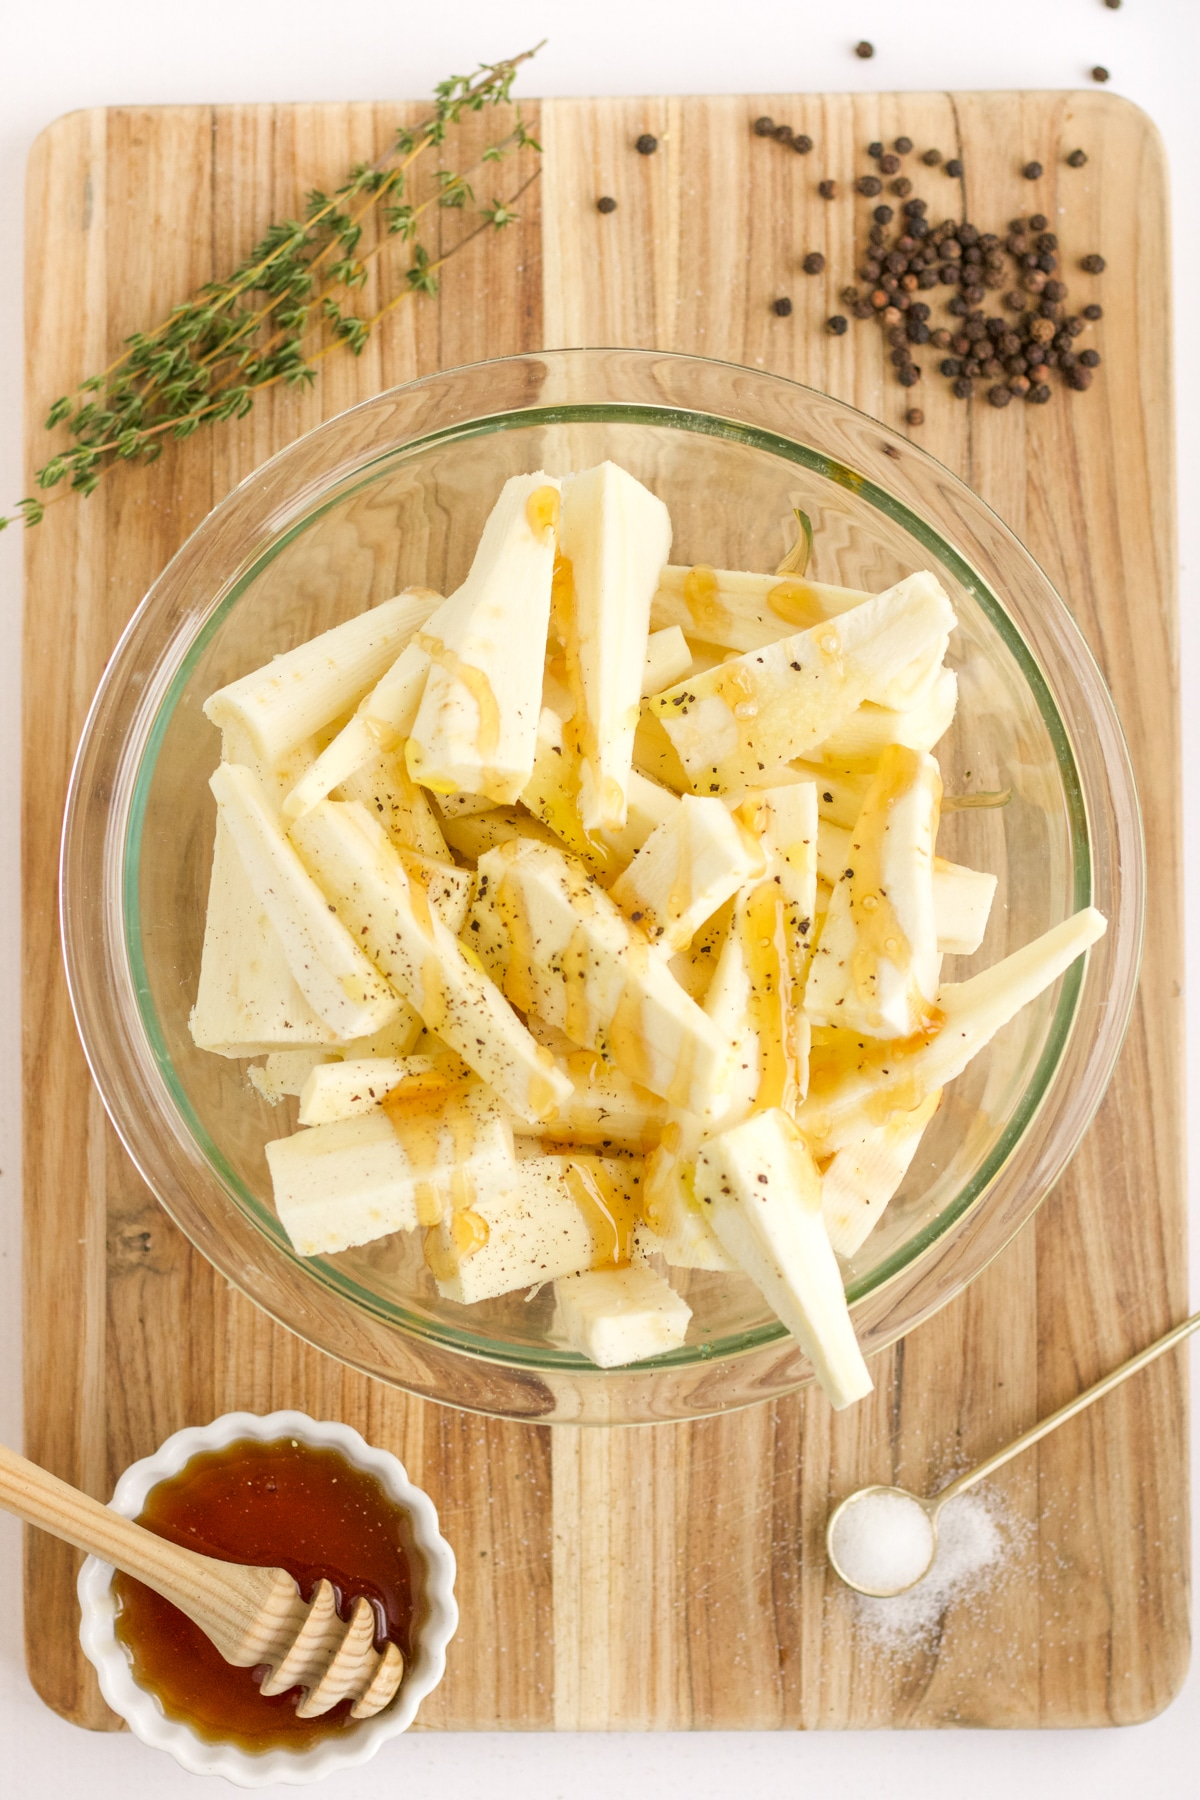 cut parsnips in a glass bowl with other ingredients